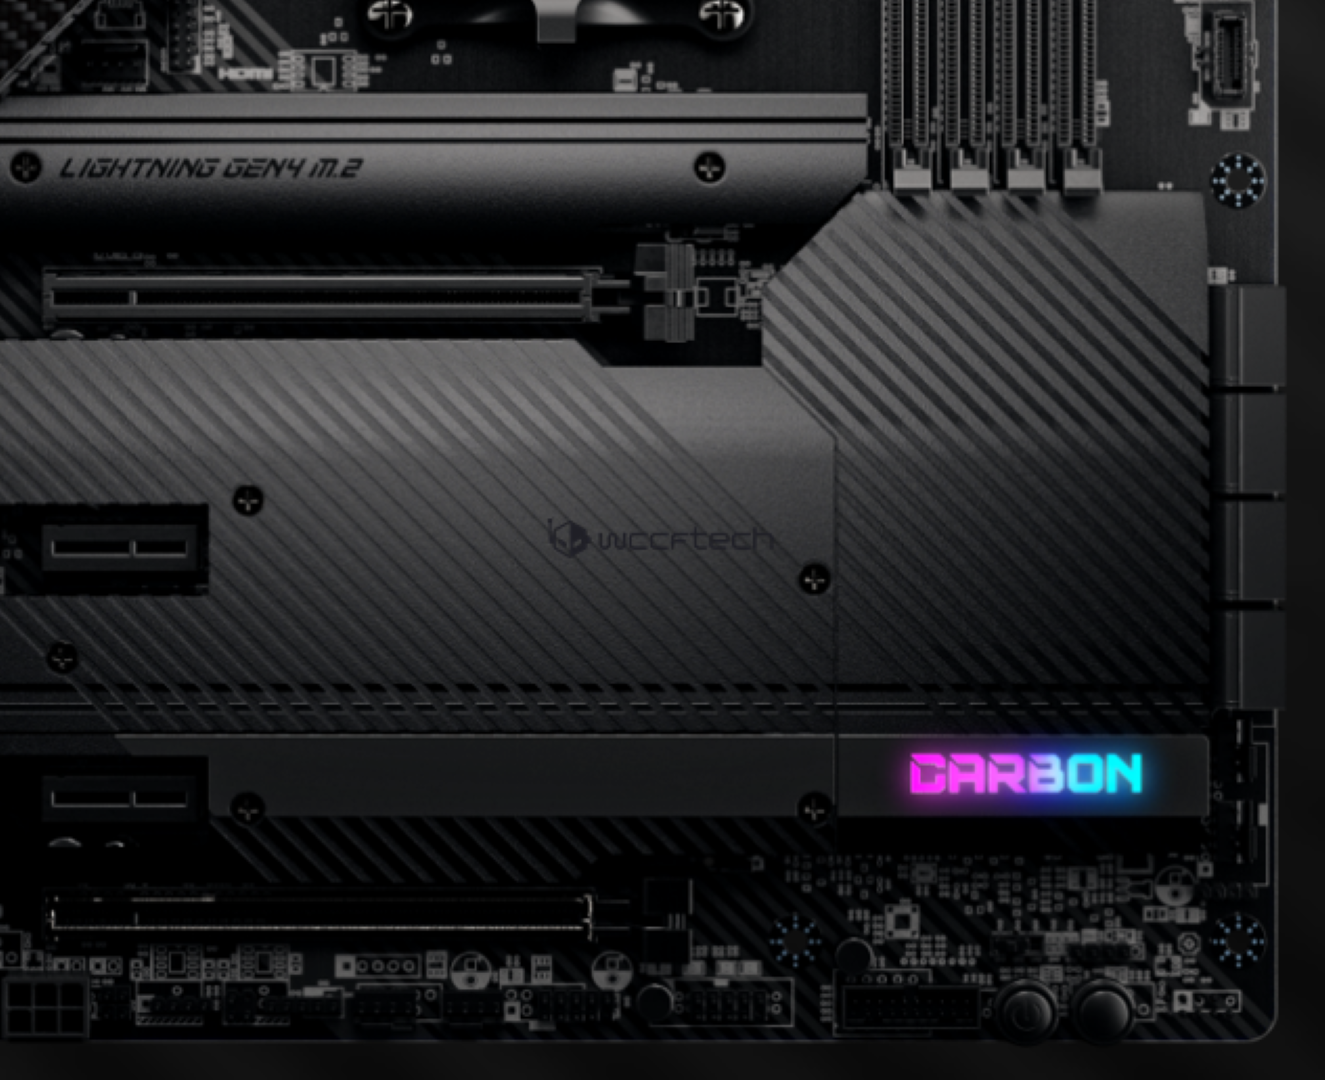 MSI X570S Motherboard Lineup For AMD Ryzen CPUs Leaks Out, First Fanless X570 Board Pictured Too